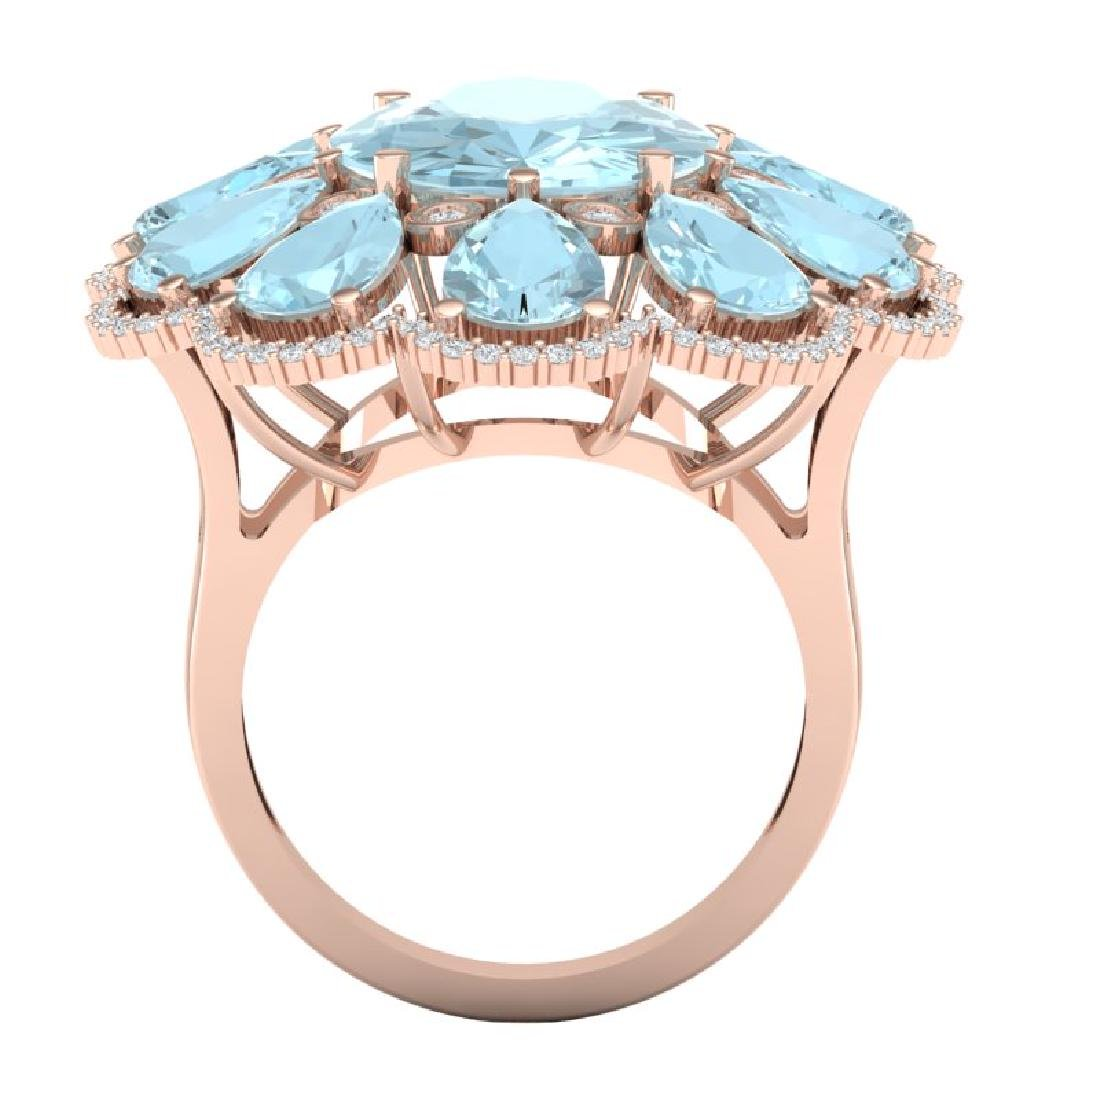 20.54 CTW Royalty Sky Topaz & VS Diamond Ring 18K Rose - 3